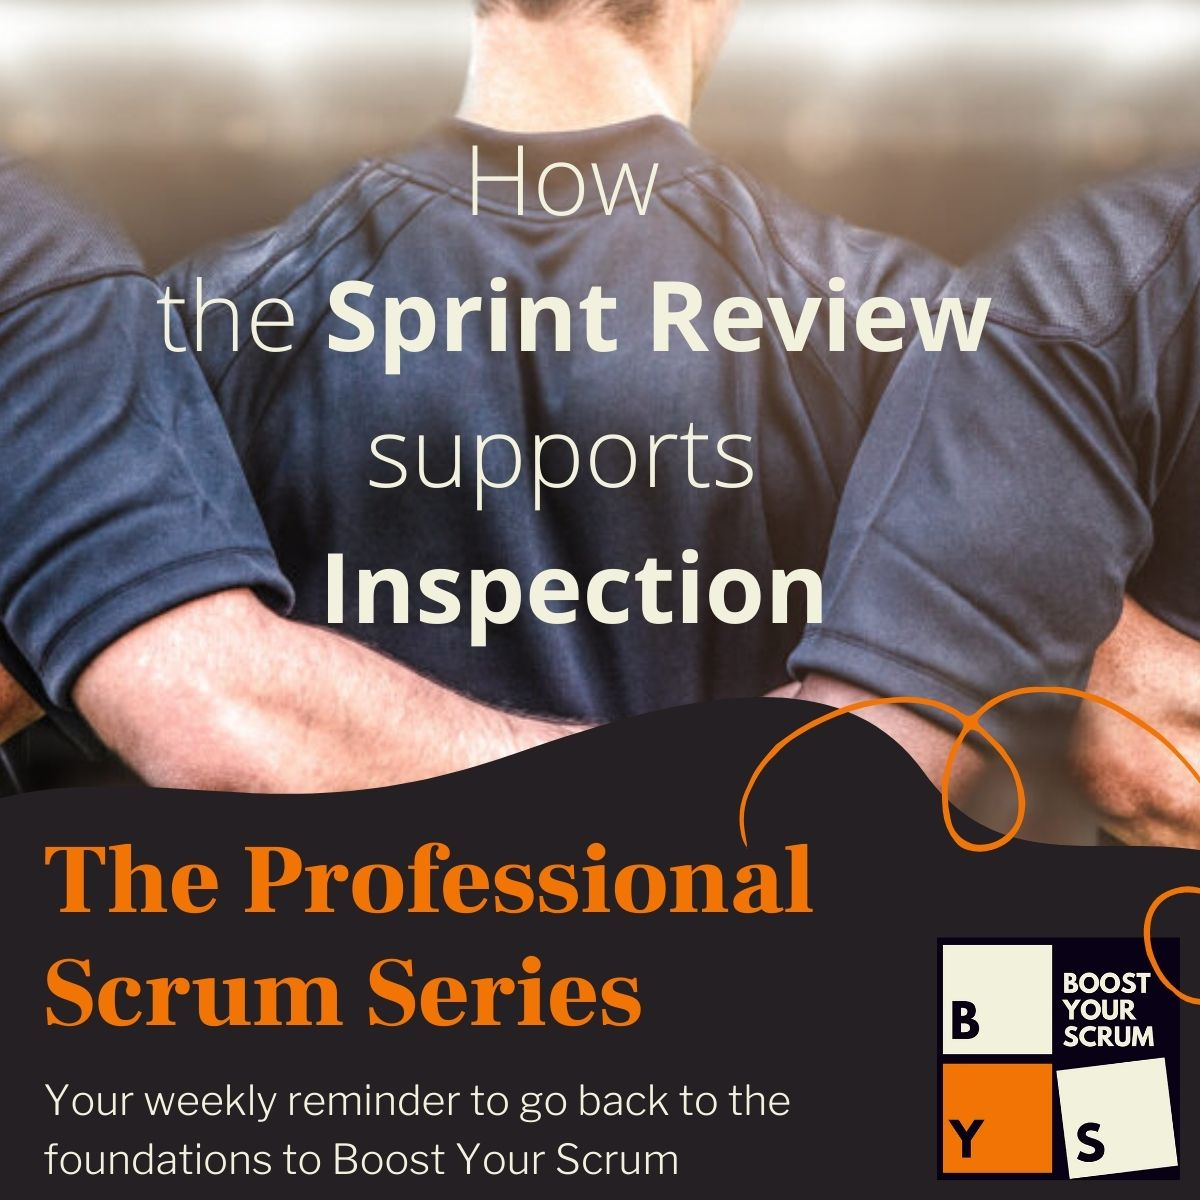 How the Sprint Review supports Inspection